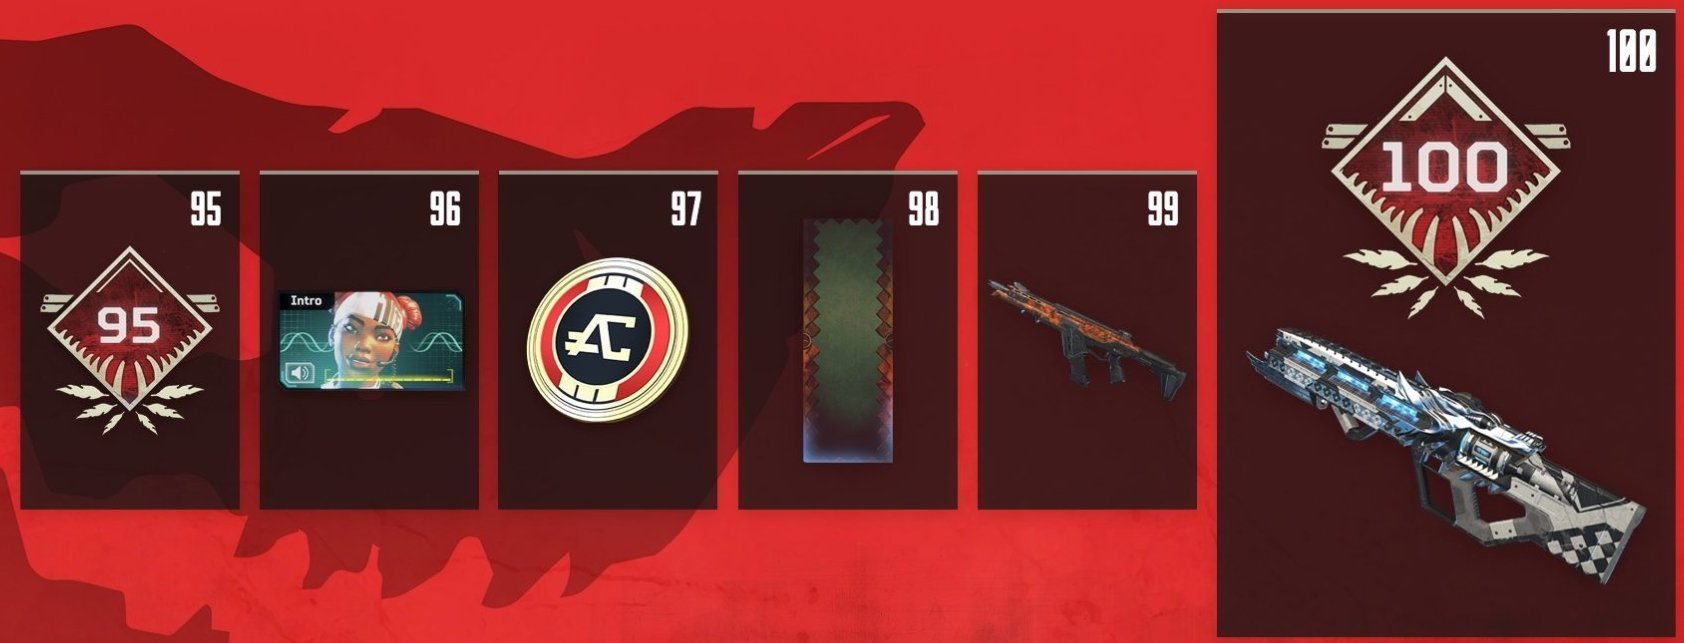 Apex Legends Battle Pass Rewards Levels 95-100